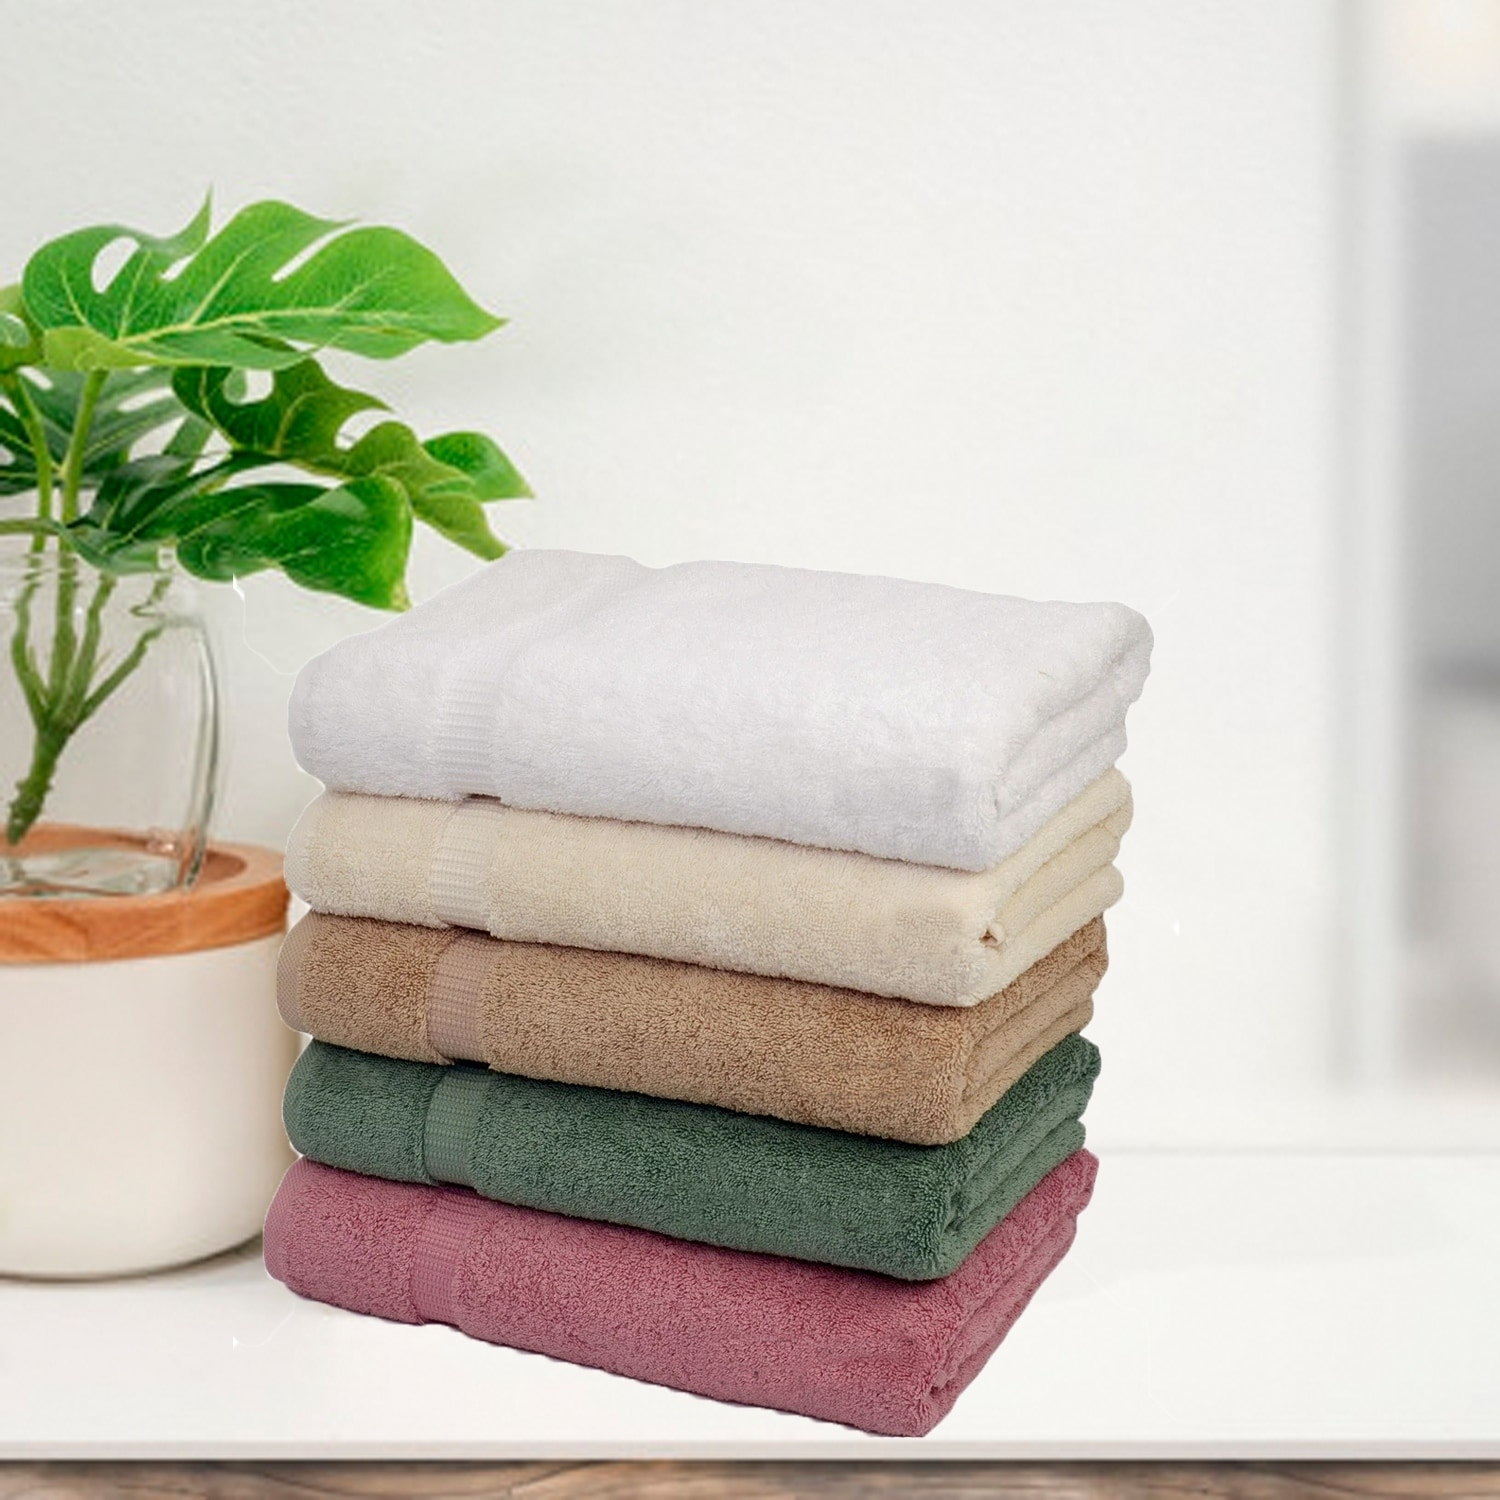 Salbakos 'Cambridge' Luxury Turkish Cotton 4-piece Bath Towel Set at Sears.com